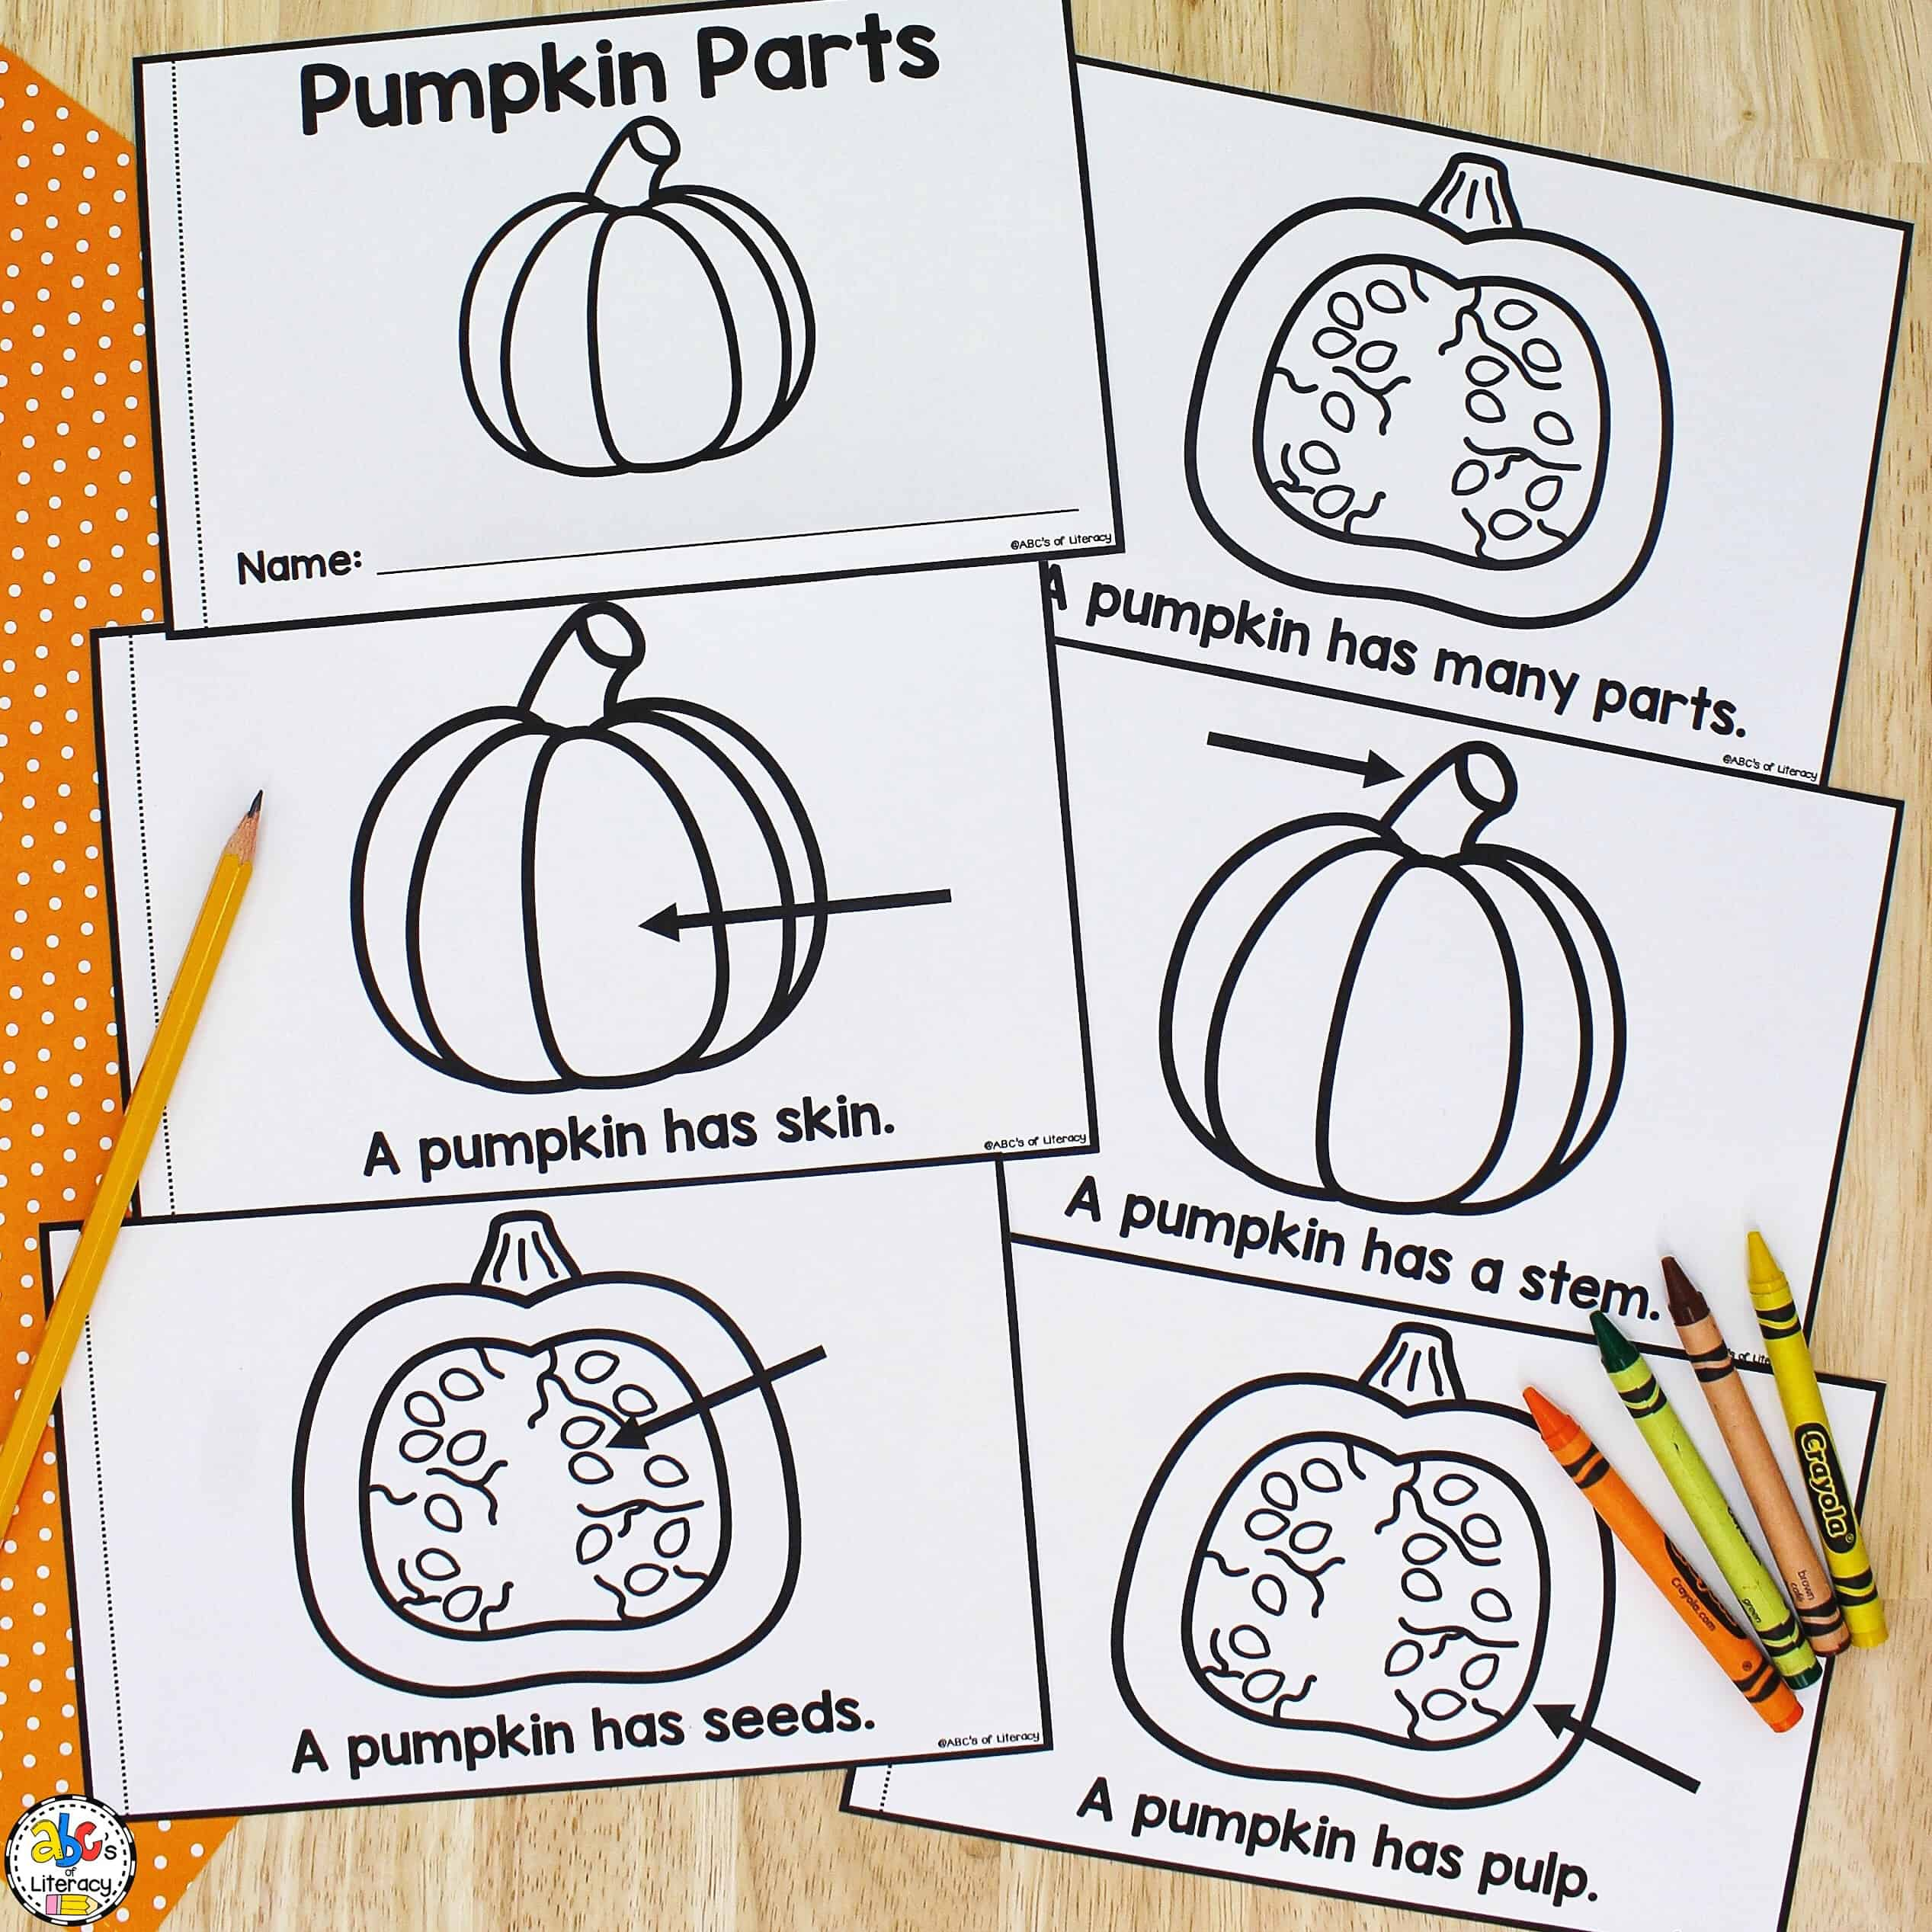 Pumpkin Parts Book